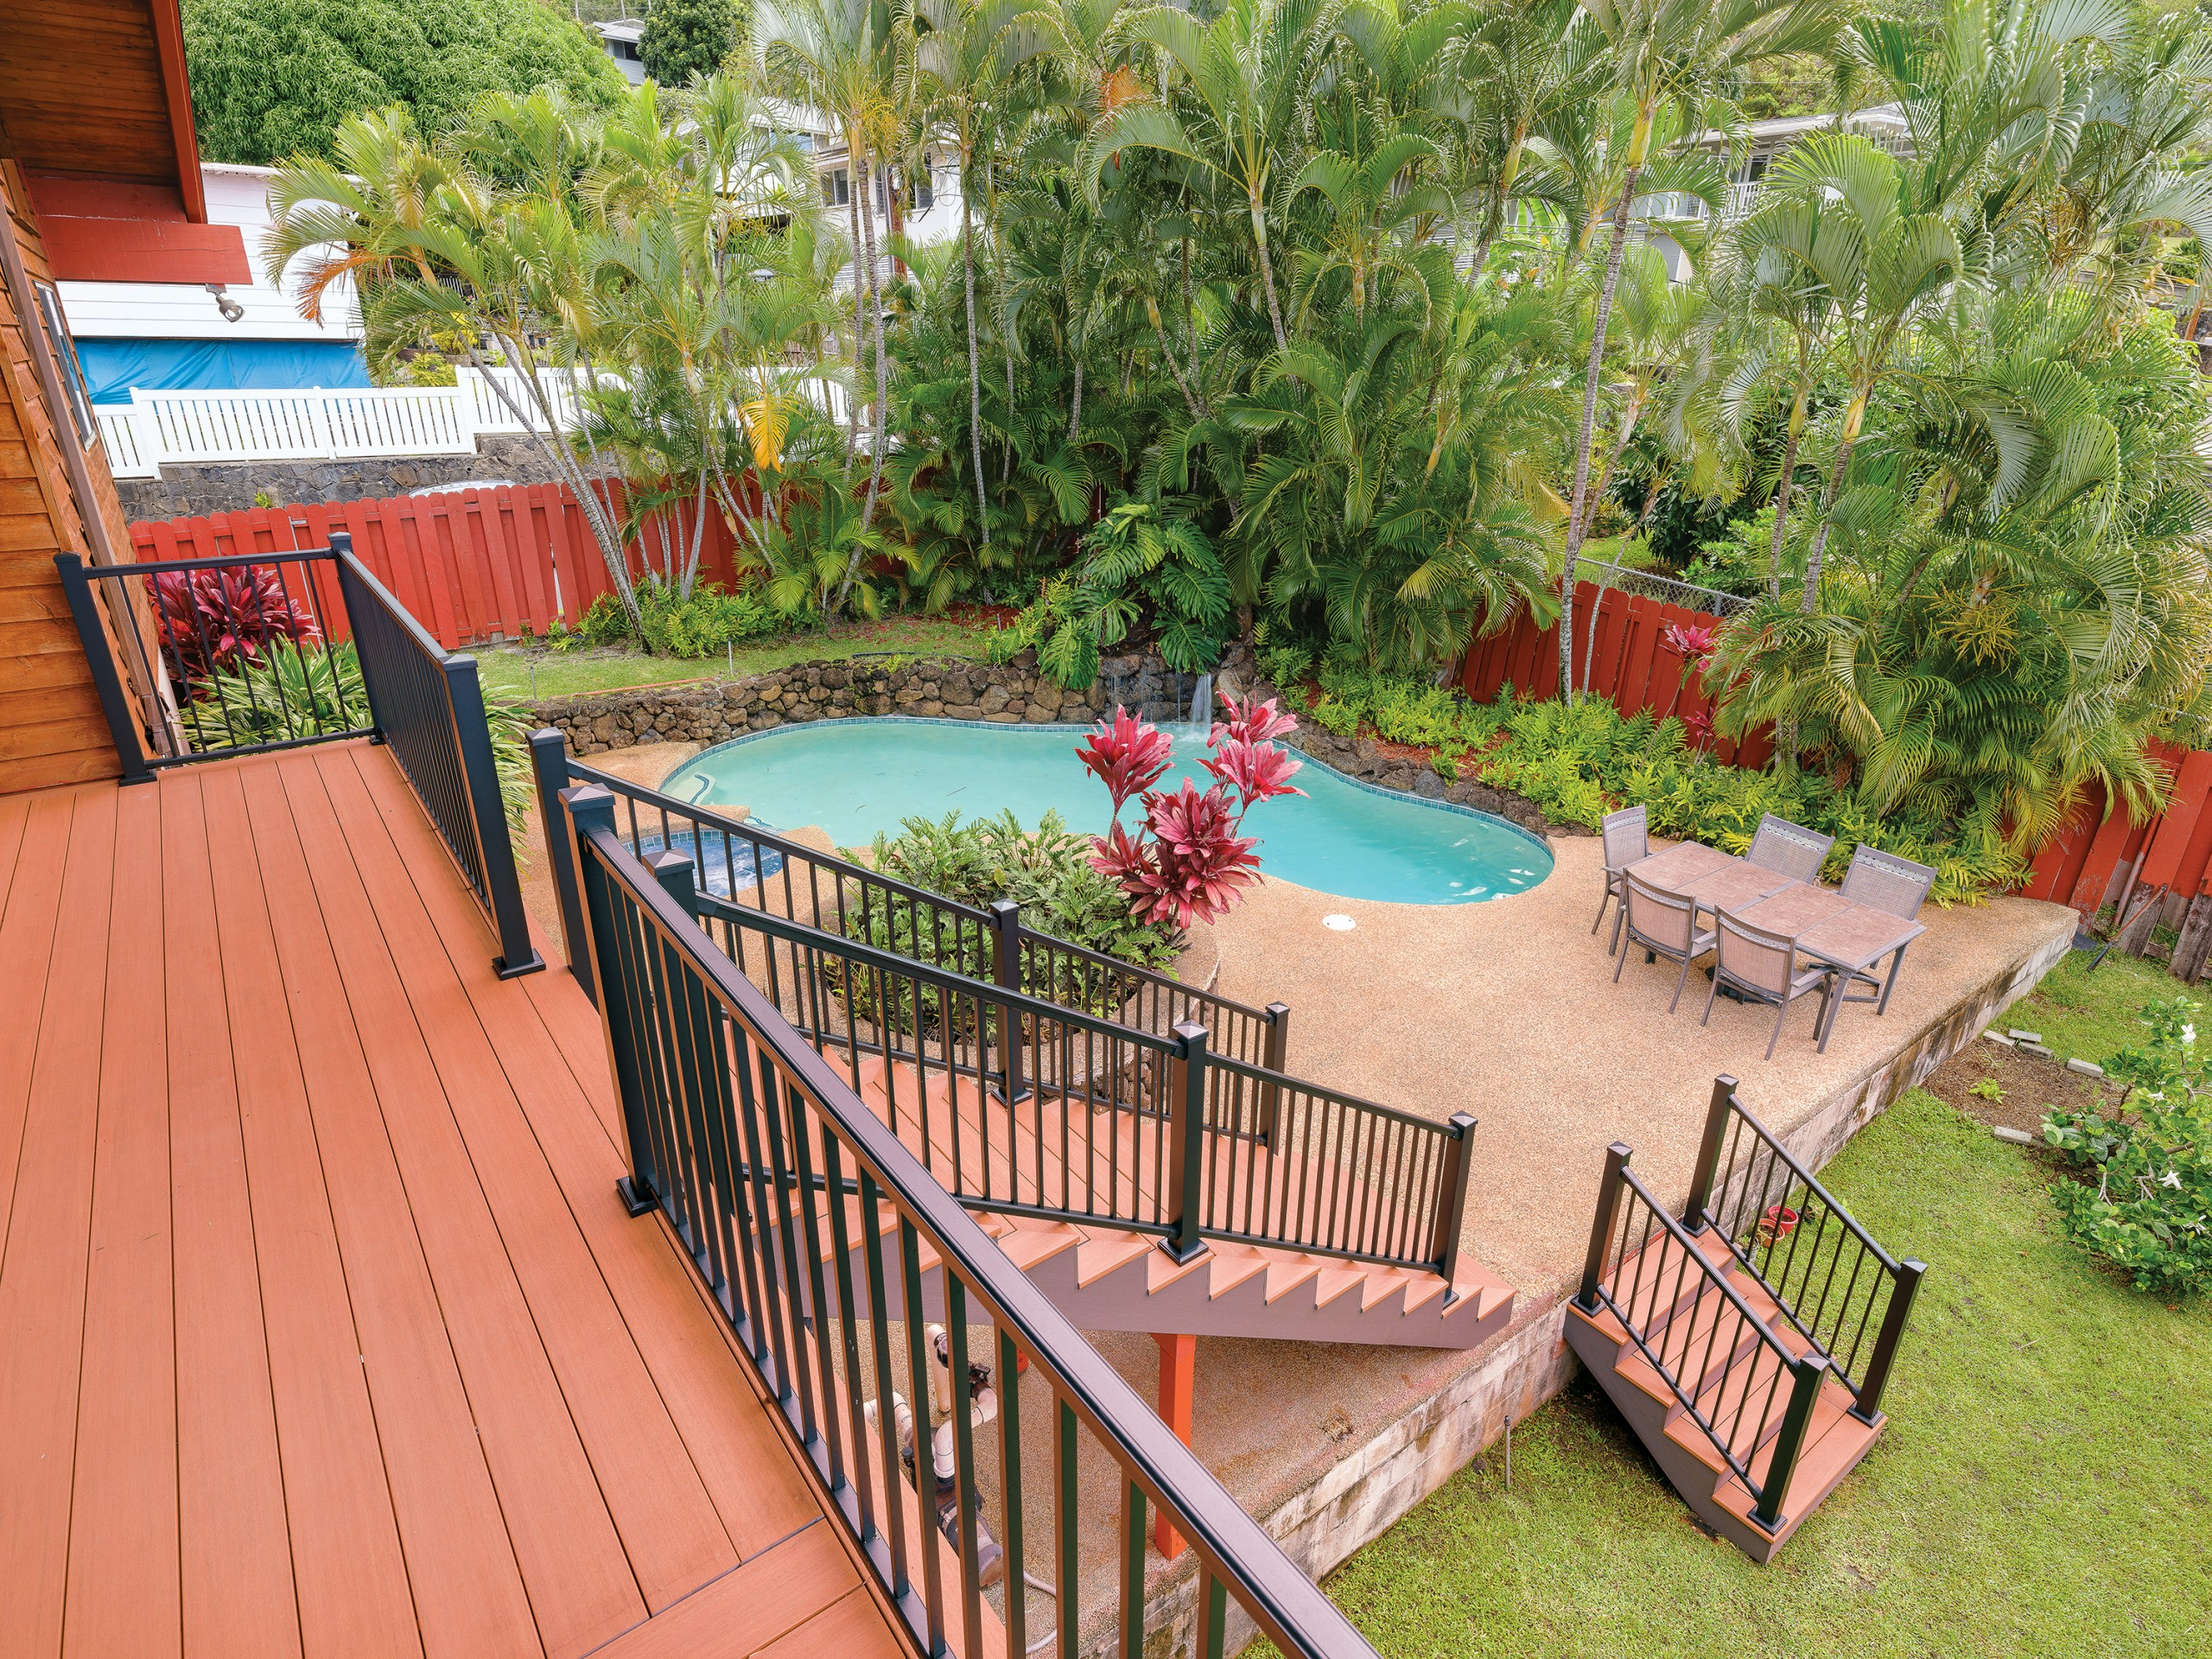 Rinell Decking